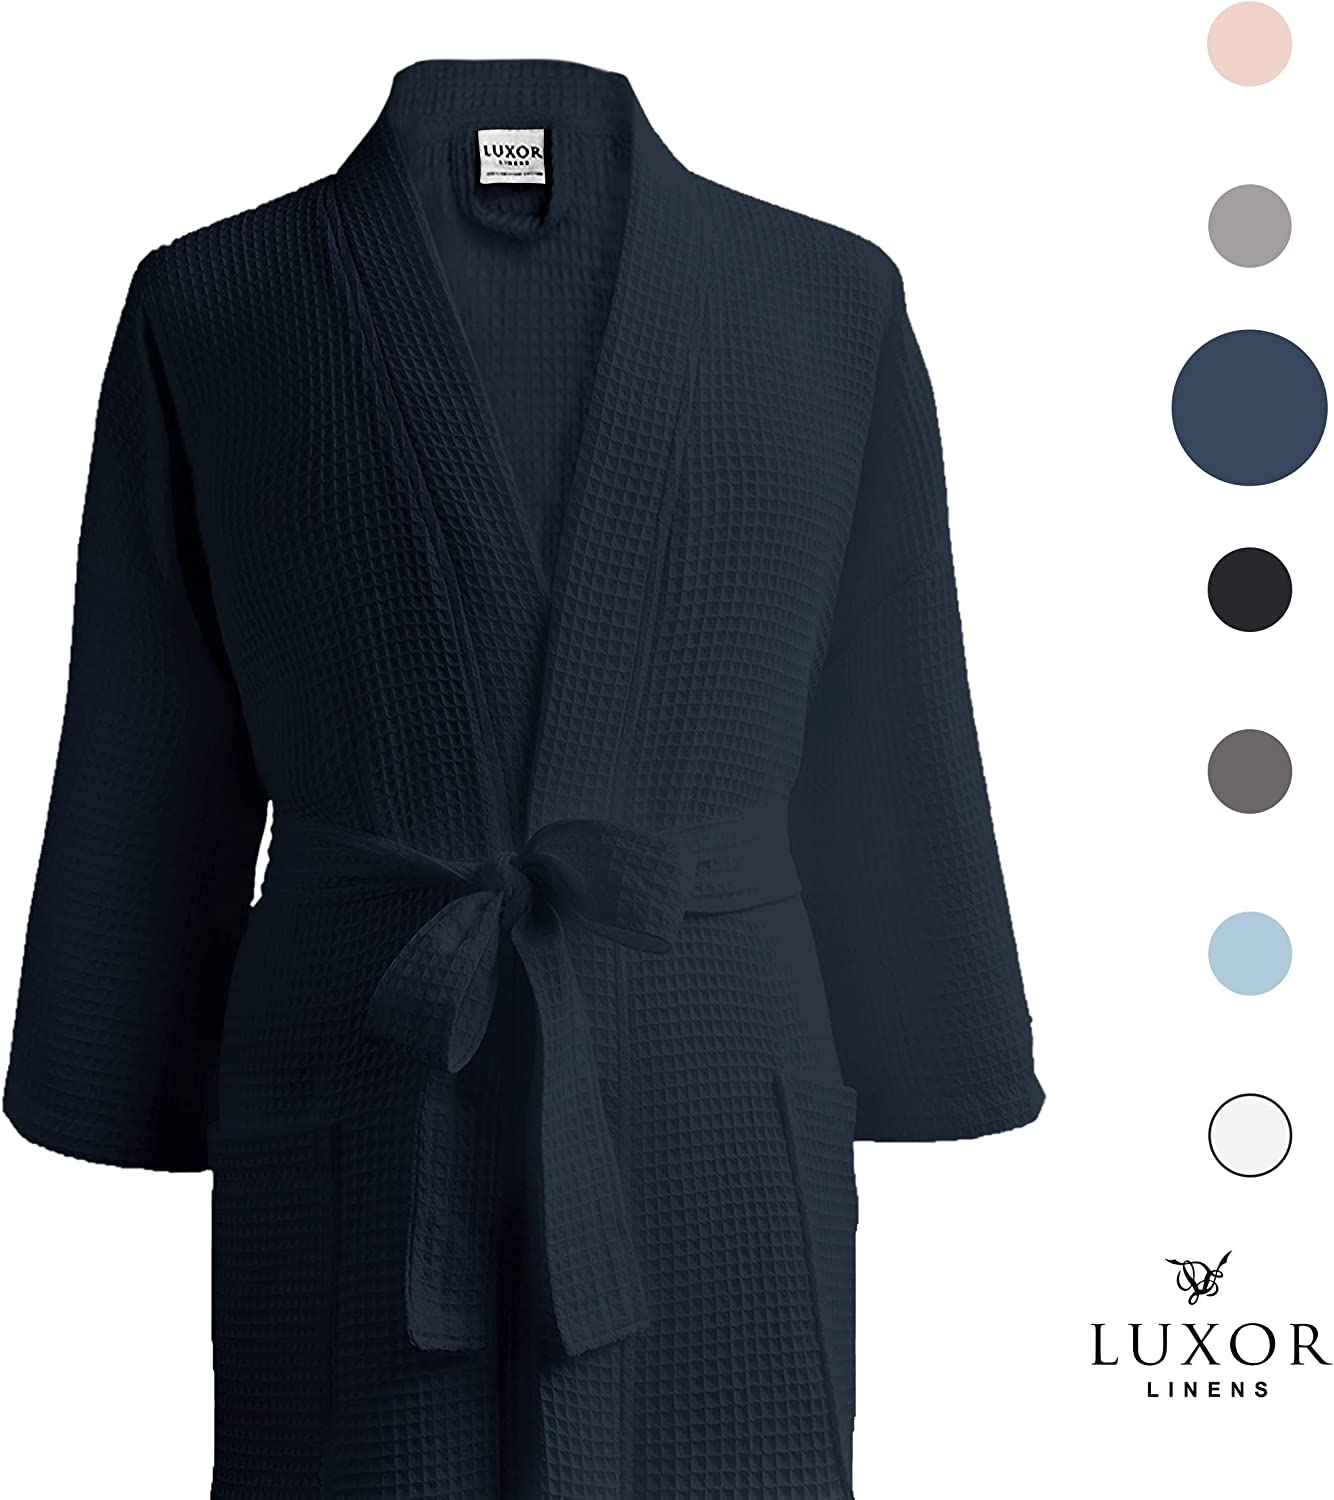 Navy One Size Fits Most Unisex//One Size Fits Most Waffle Bathrobe 100/% Egyptian Cotton Luxor Linens LUXA House